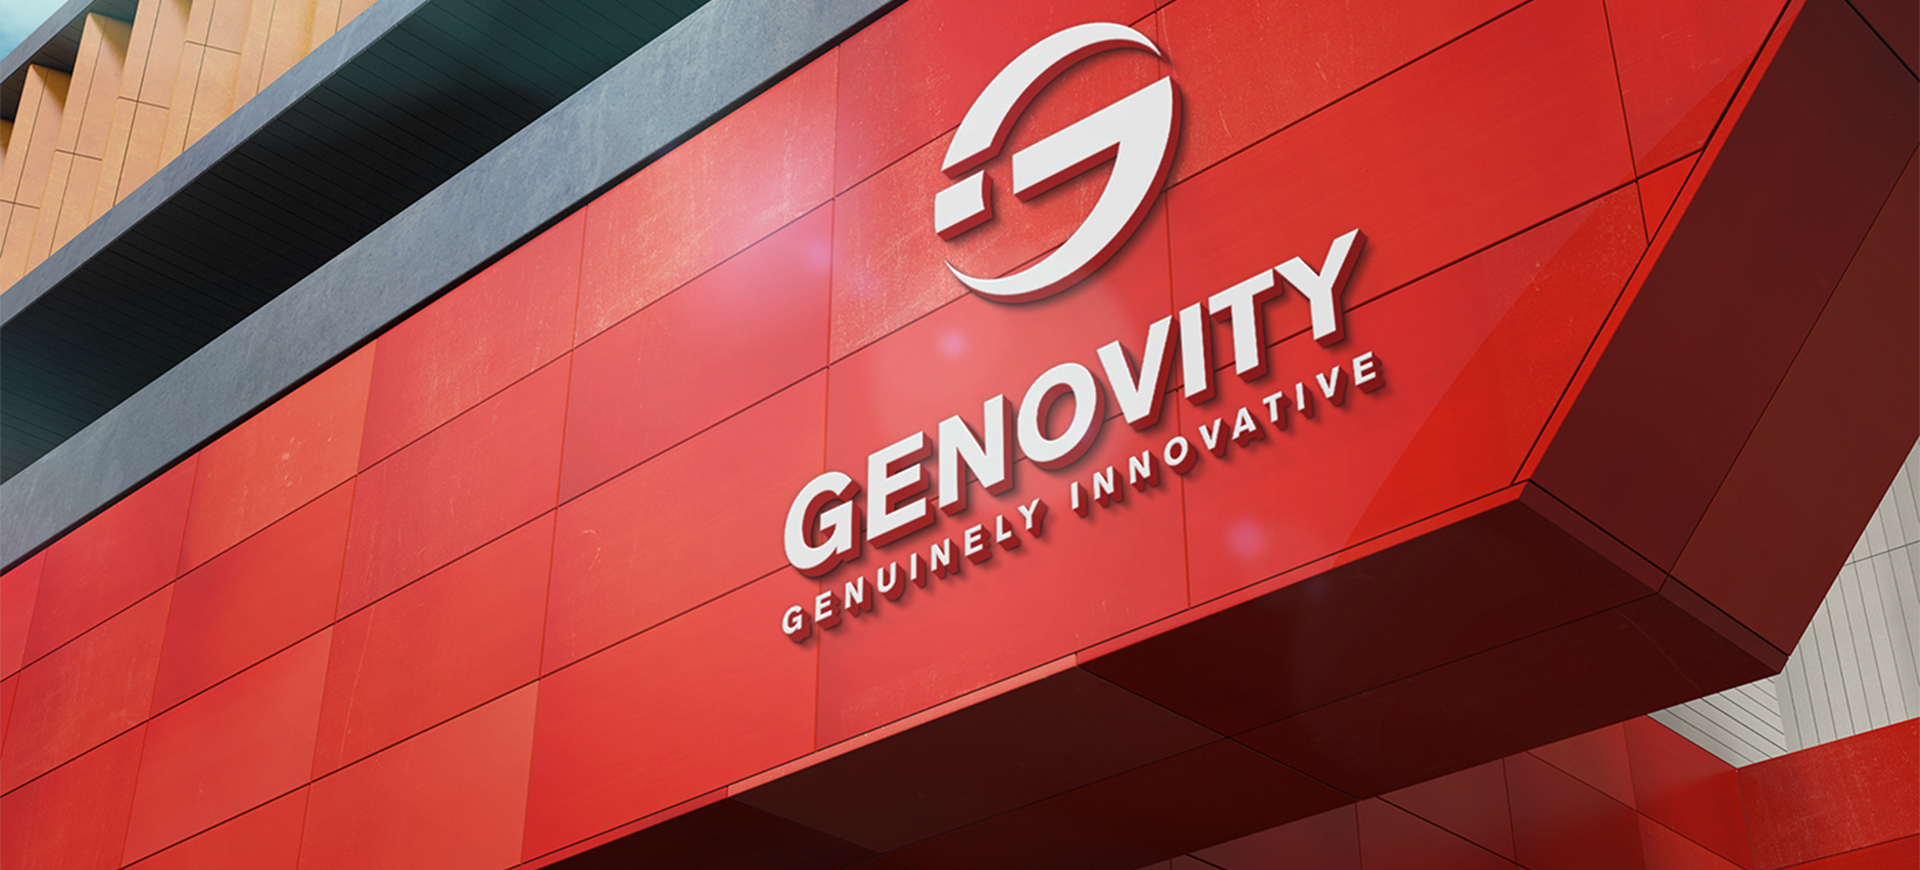 Mockup logo for Genovity